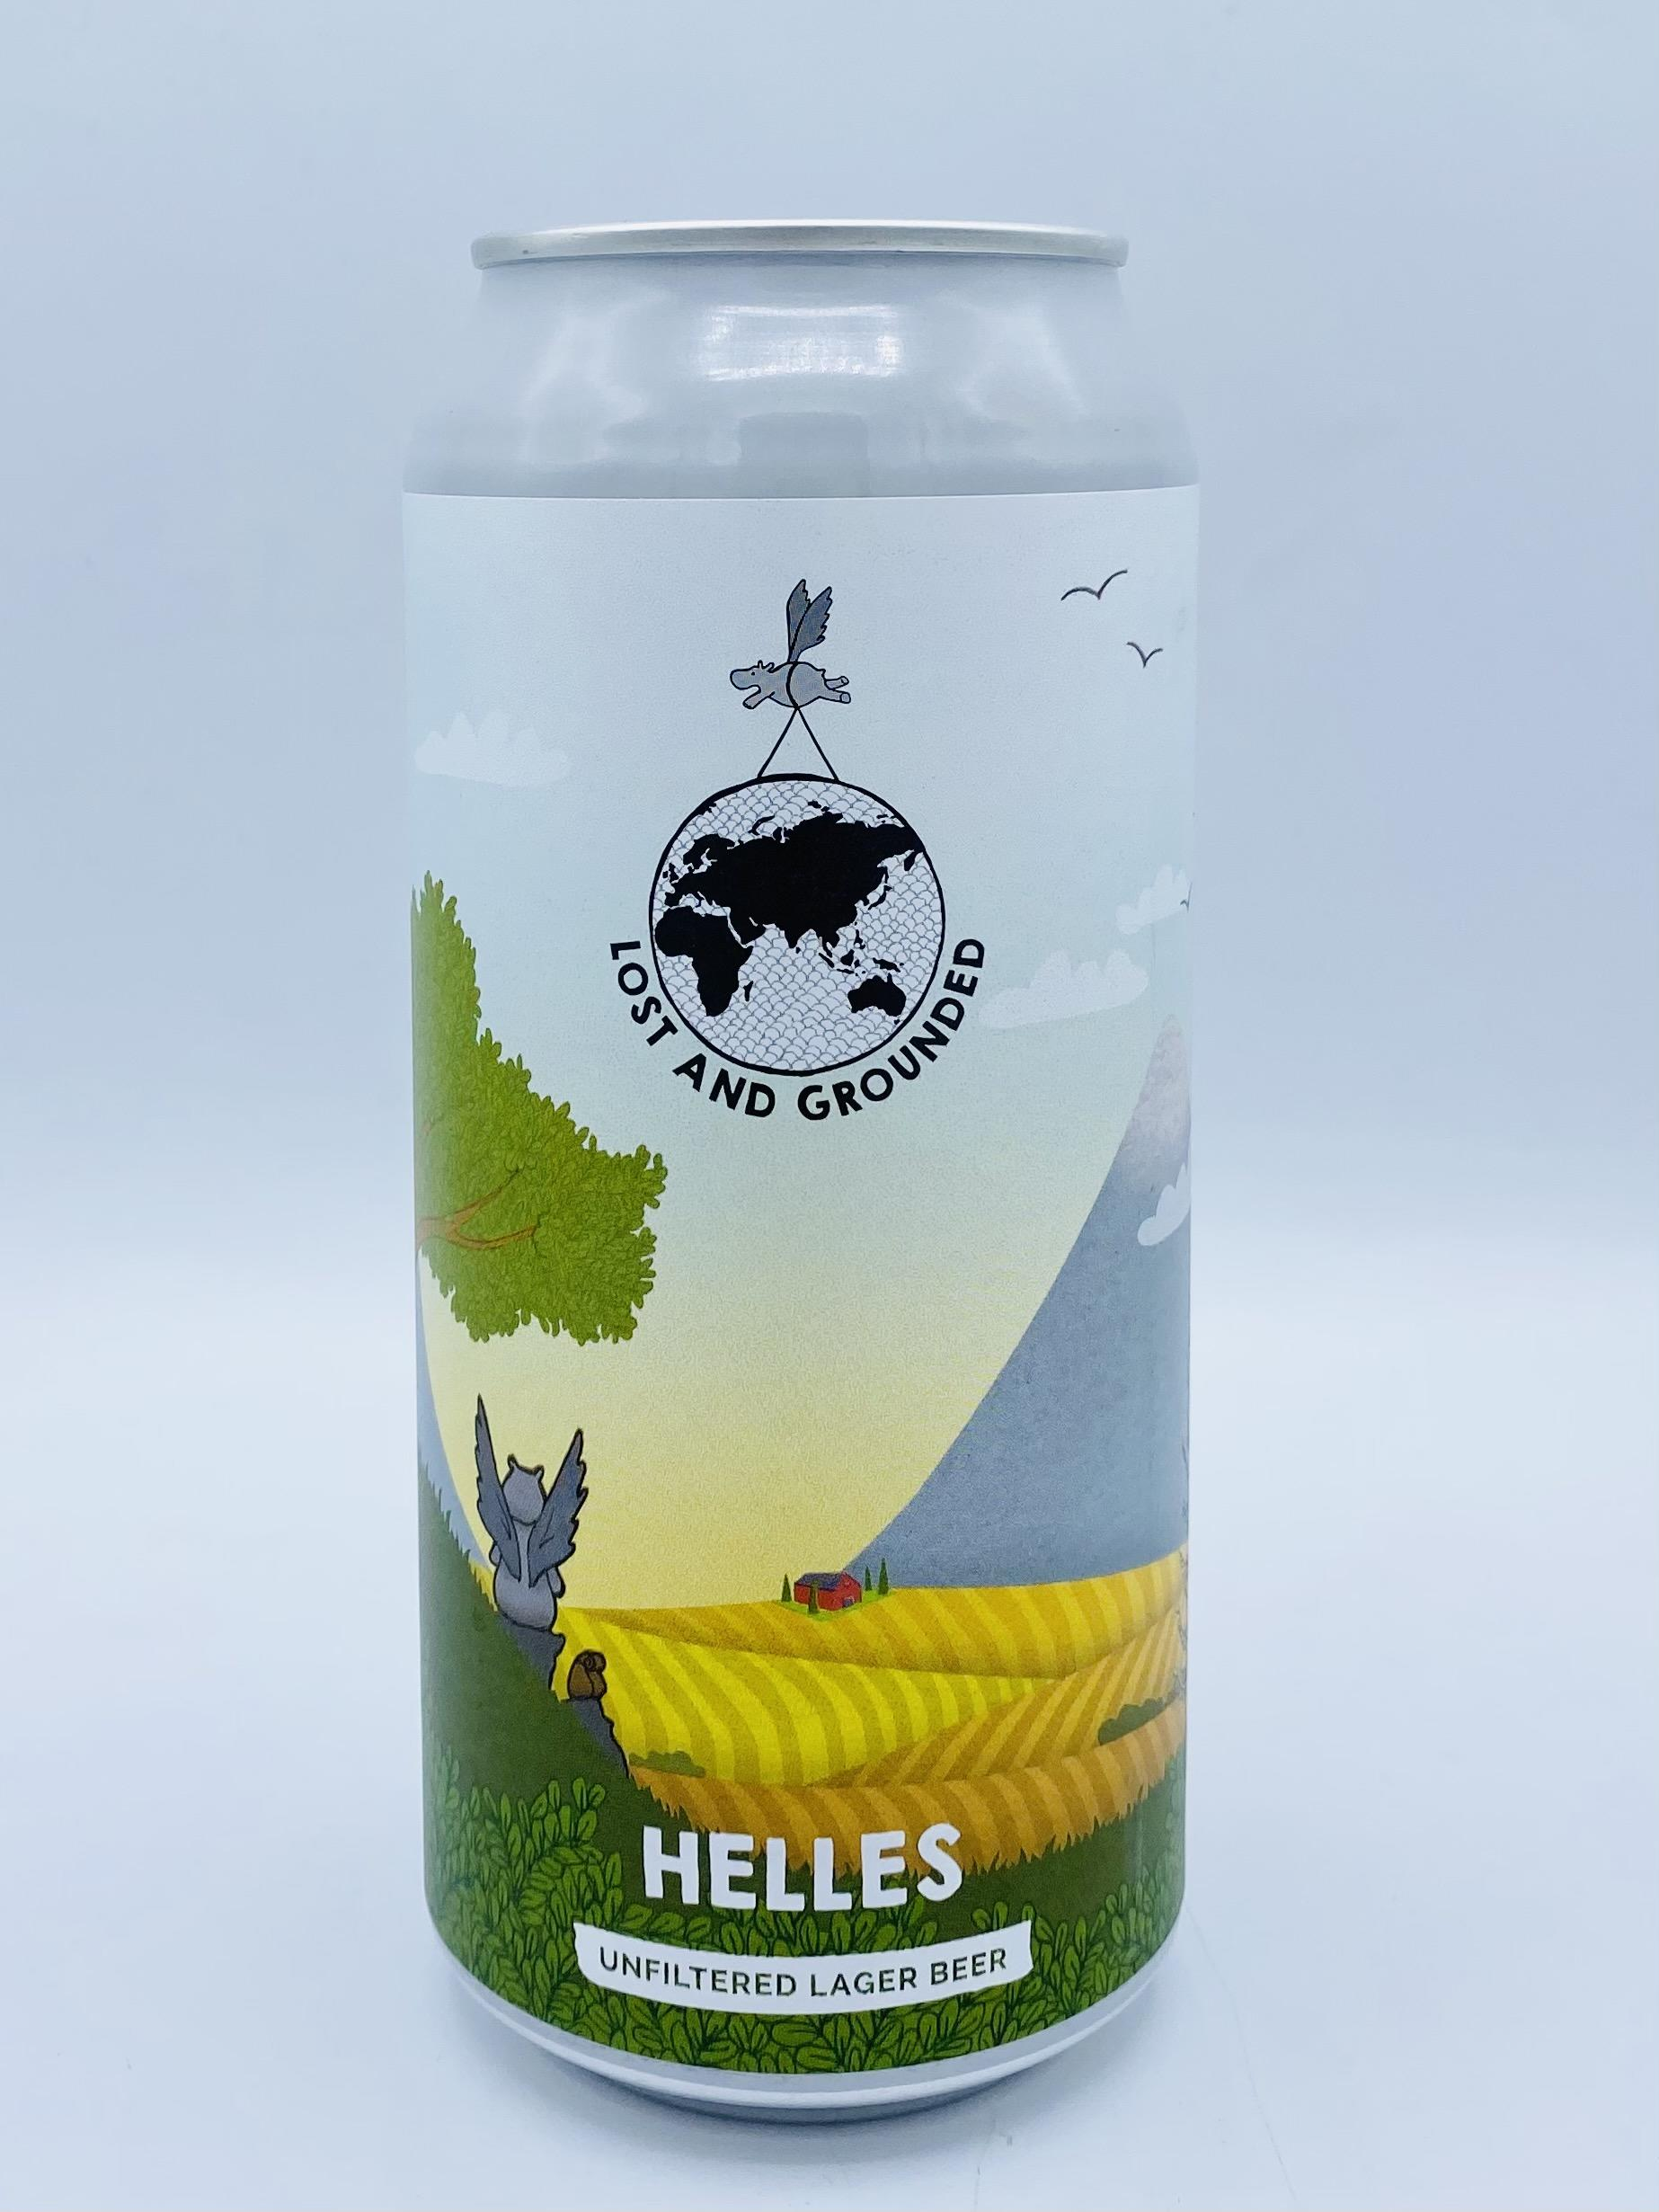 Lost & Grounded - Helles 4.4%